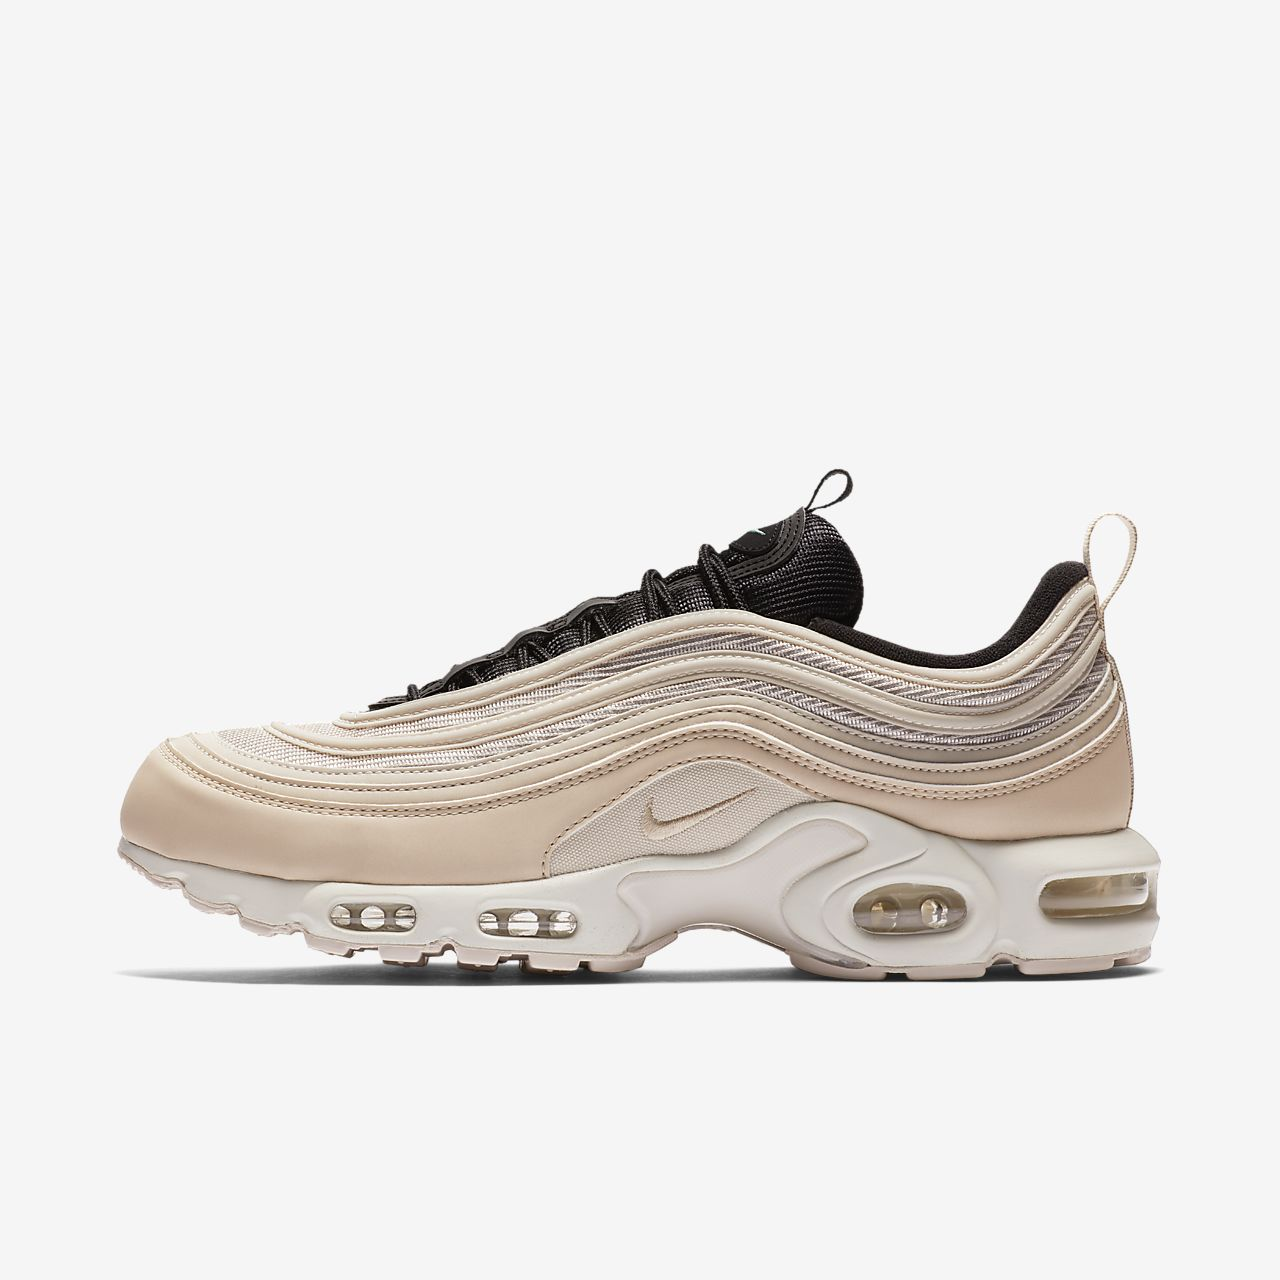 best sneakers a0542 6a798 Buty męskie Nike Air Max Plus 97